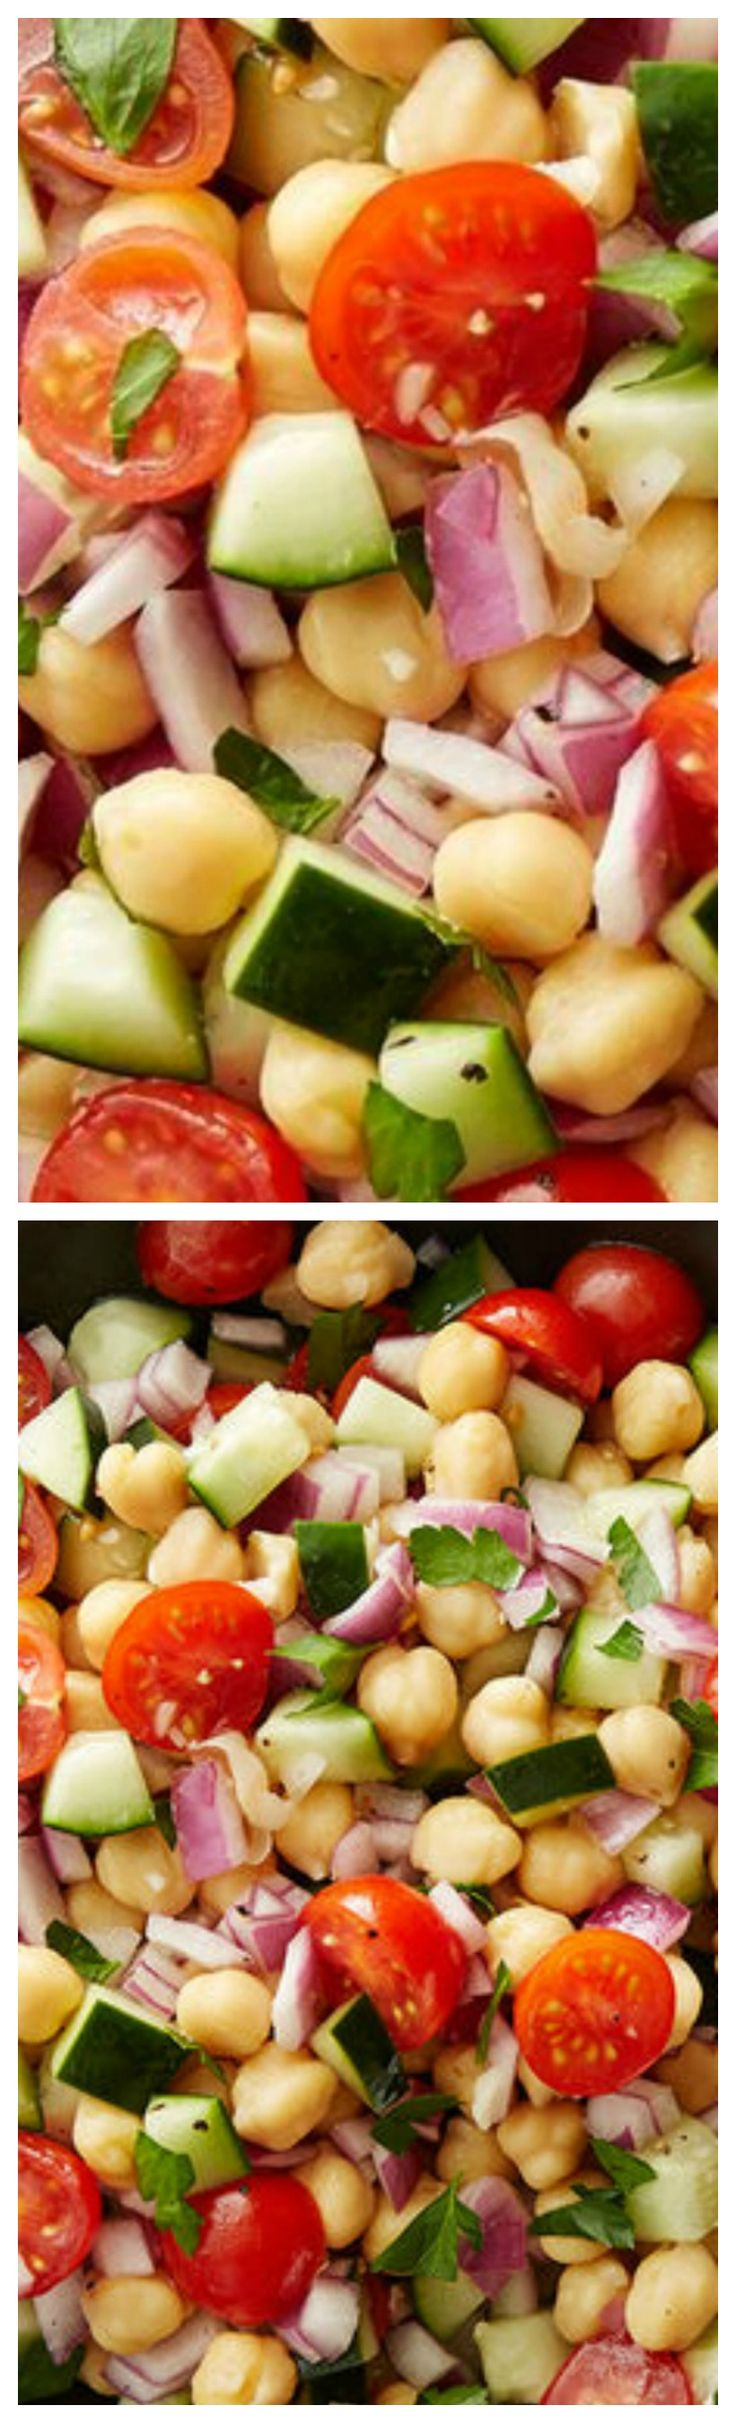 Easy Garbanzo Bean Salad ~ This super simple salad is a hit at BBQs and makes a nice addition to any lunch or dinner.